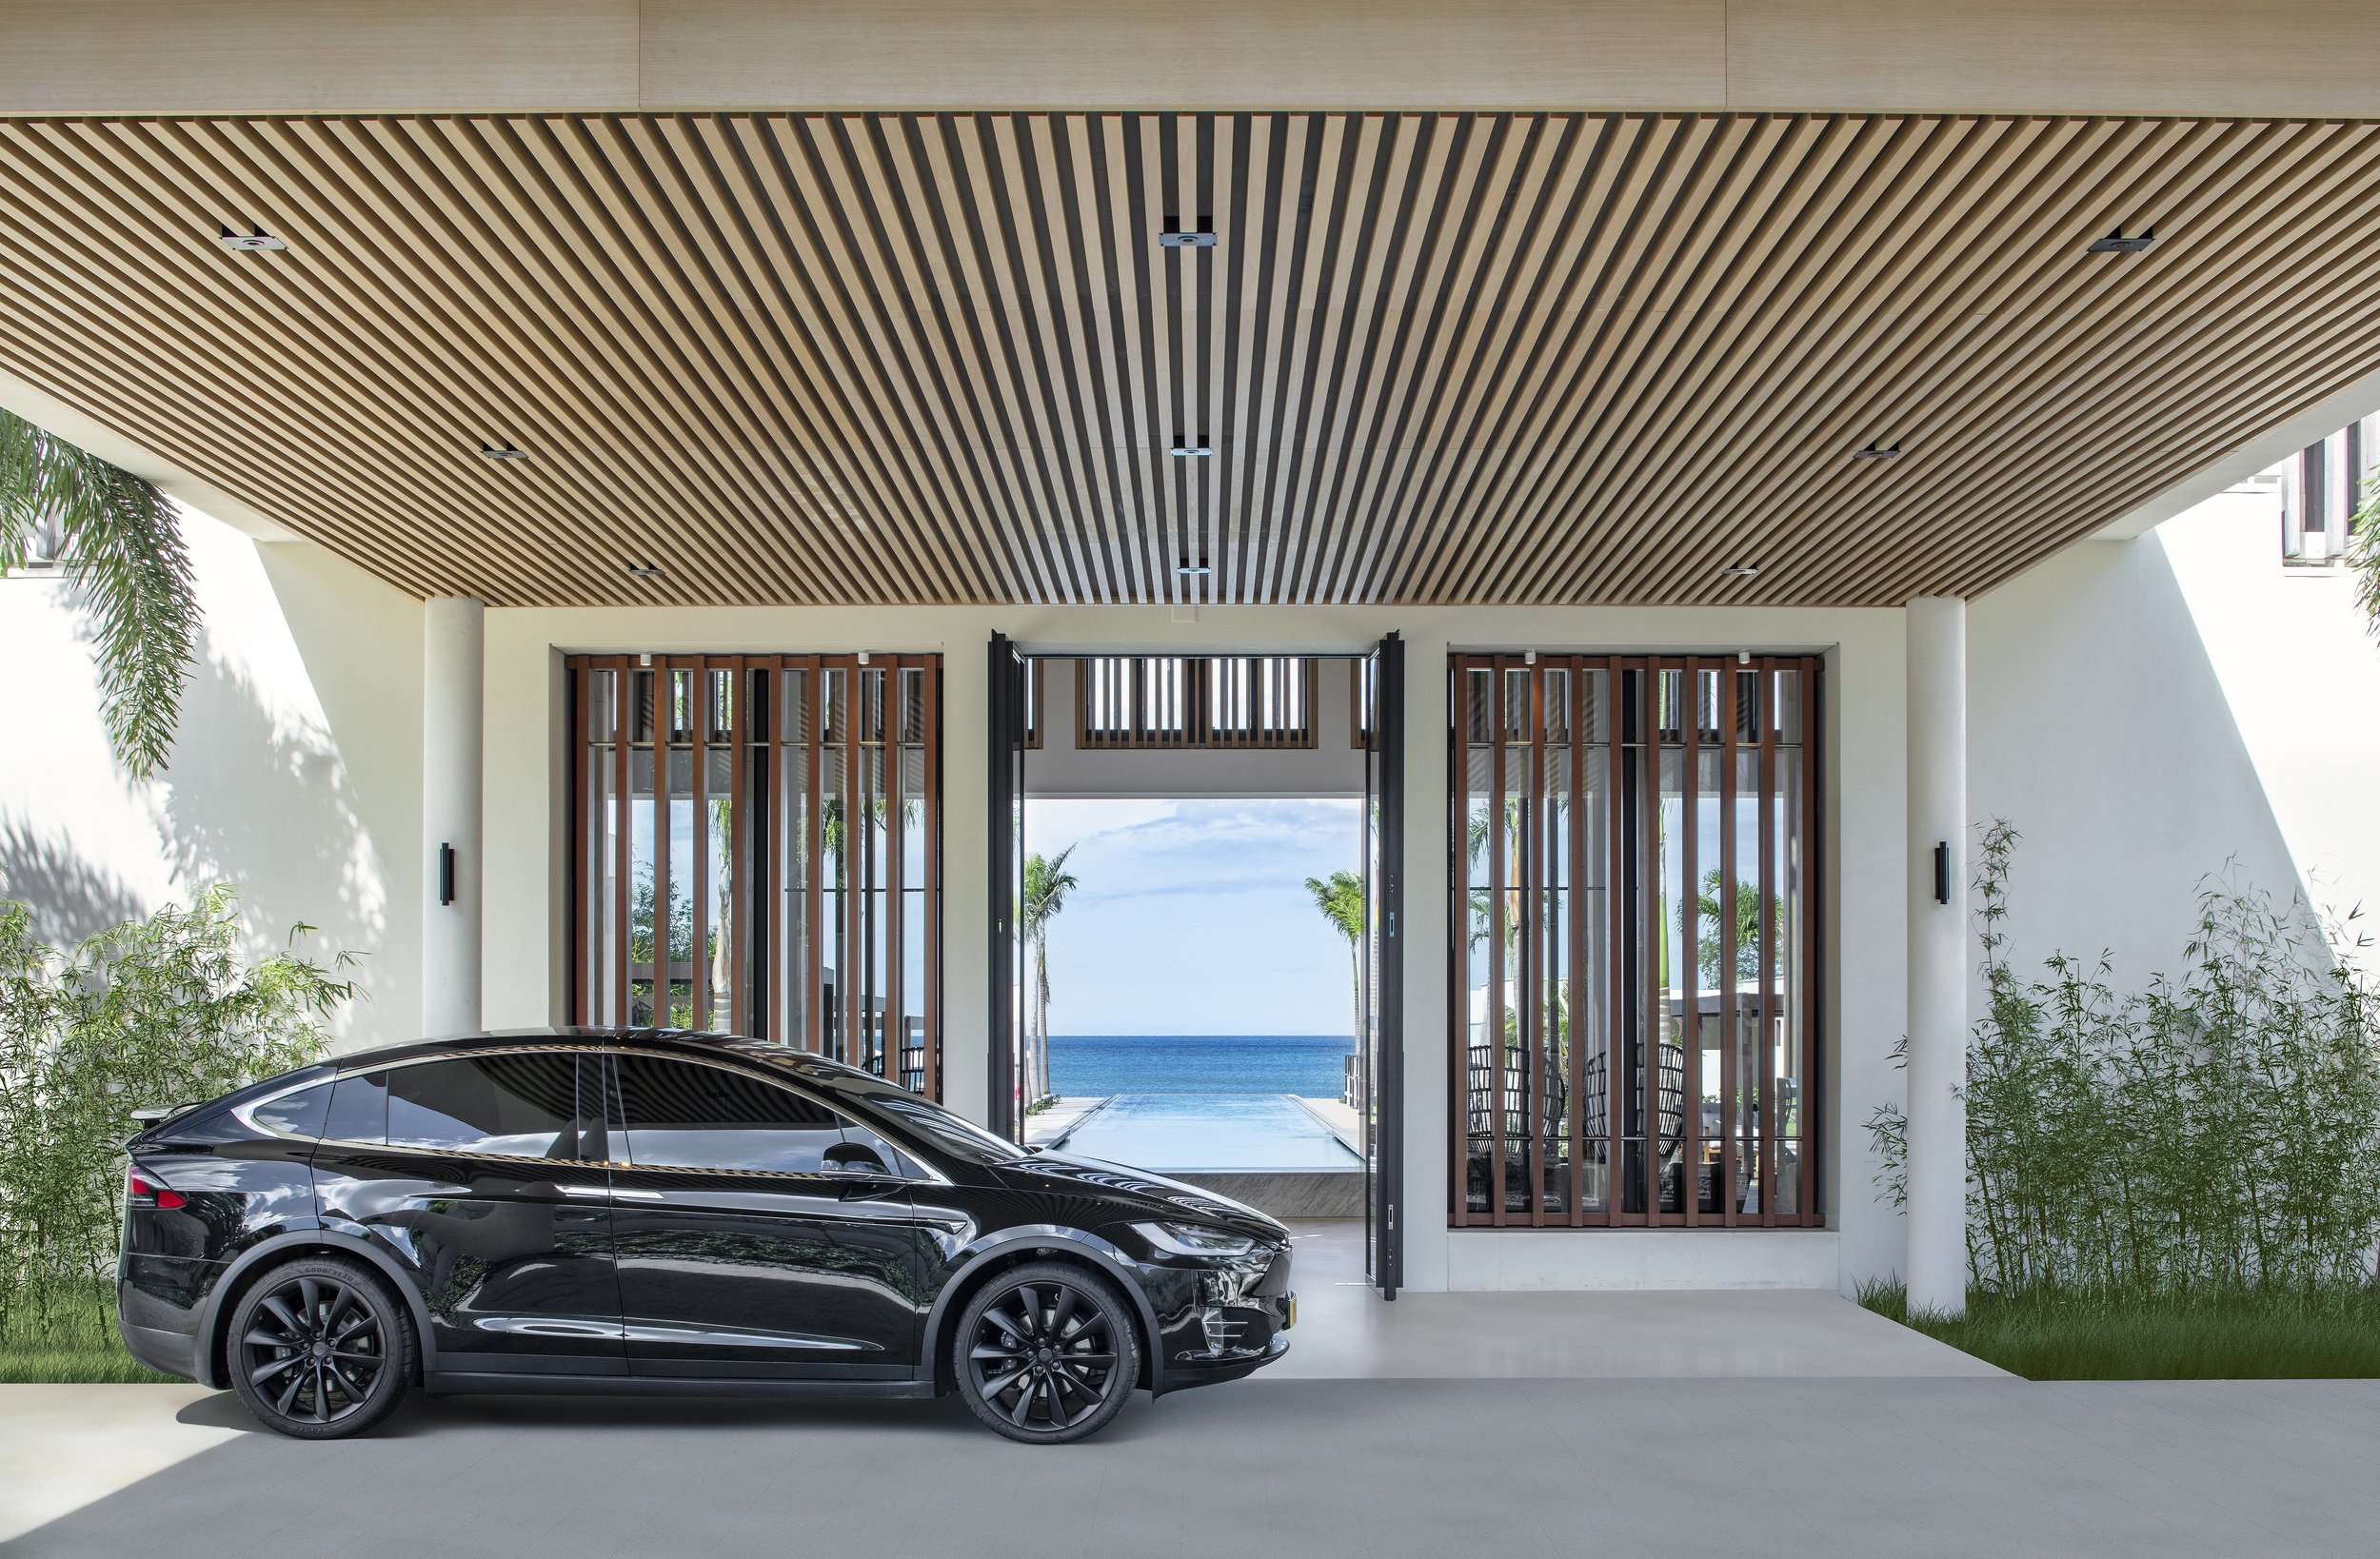 Entrance to hotel with Tesla.jpg